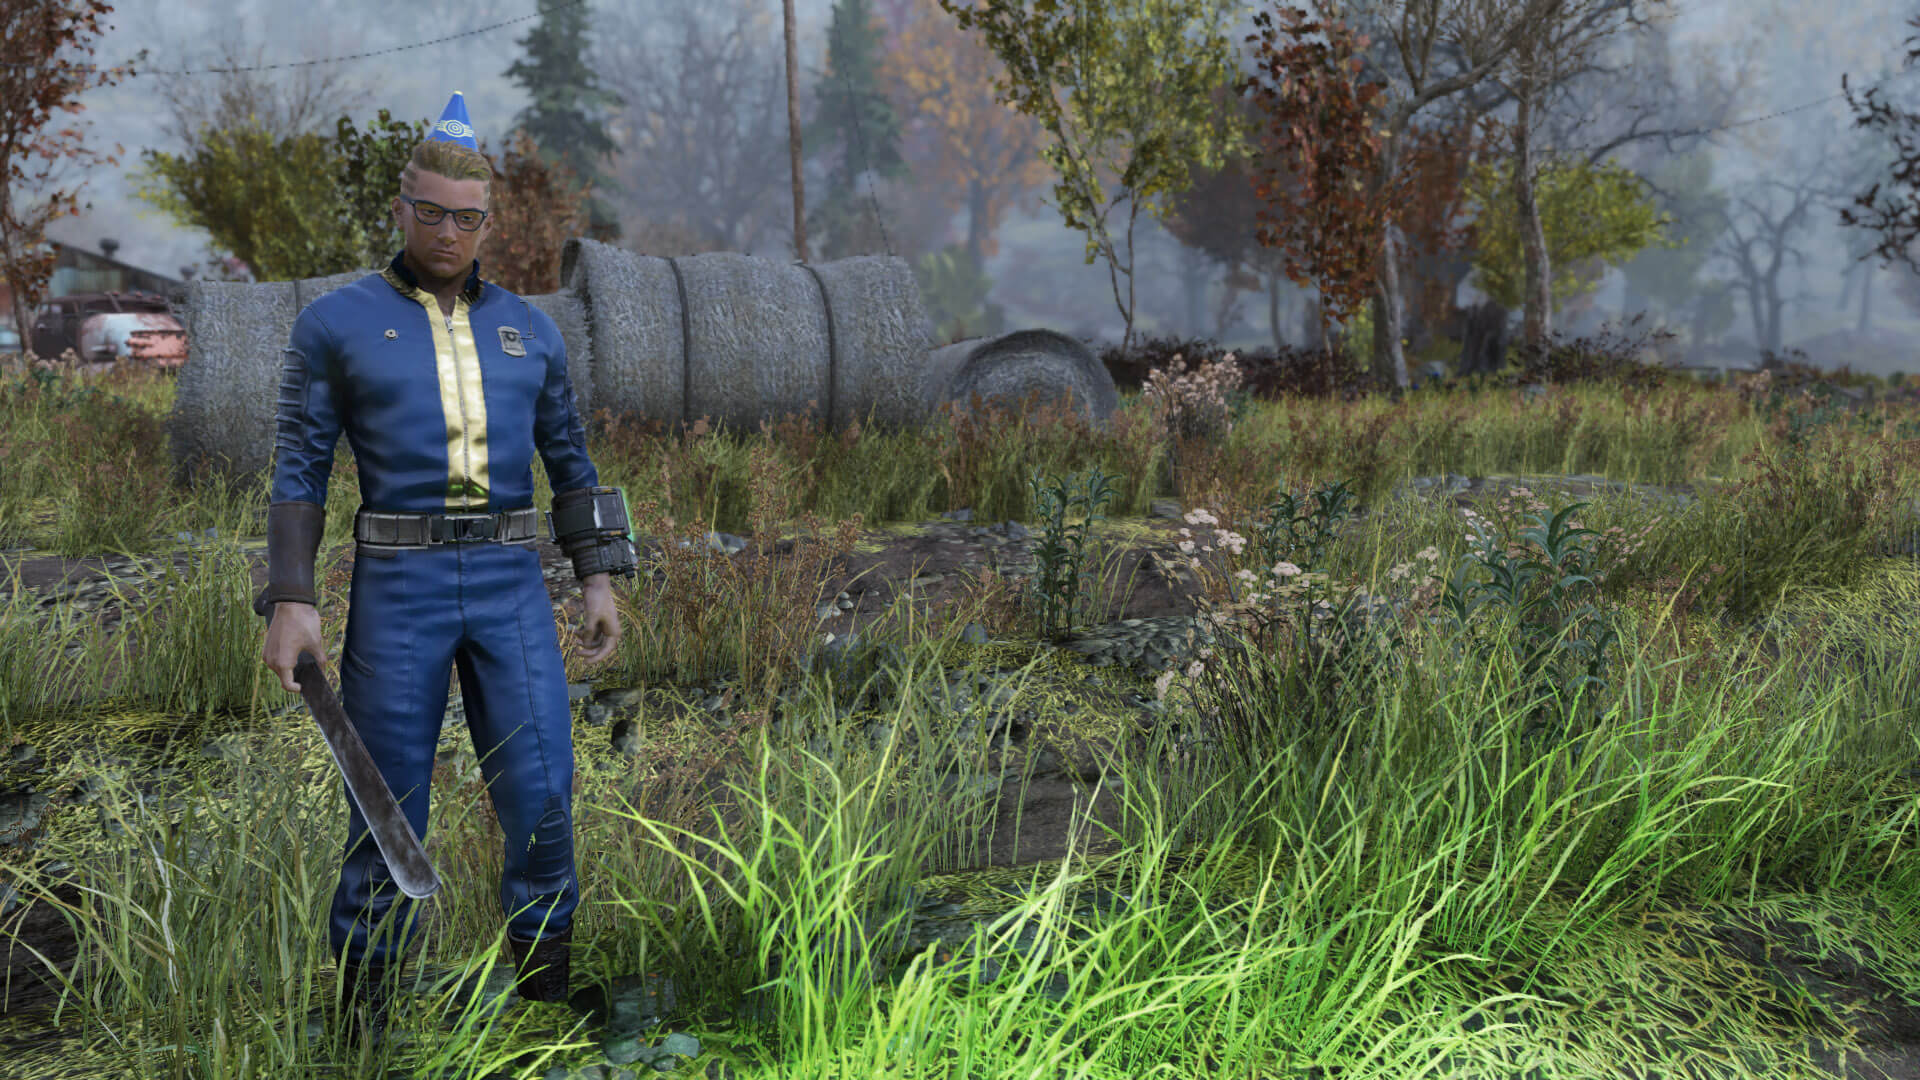 Fallout 76 First Impressions: Shockingly Fun! - DSOGaming